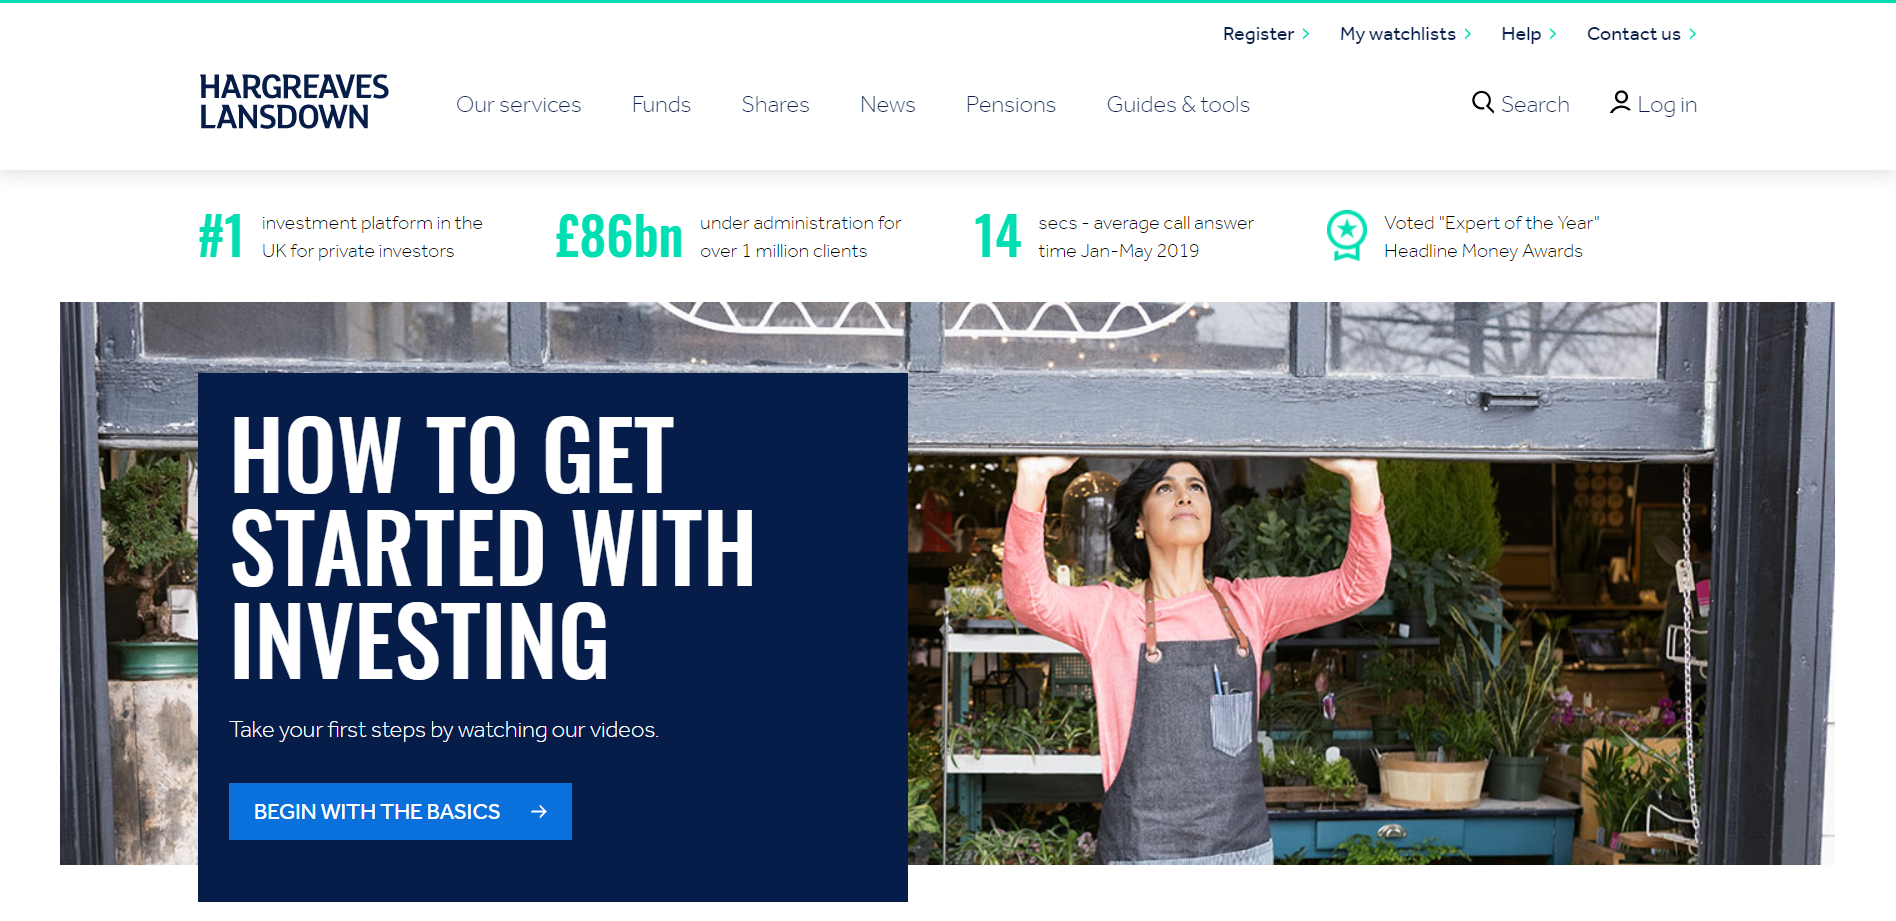 A view to the website of HARGREAVES LANSDOWN